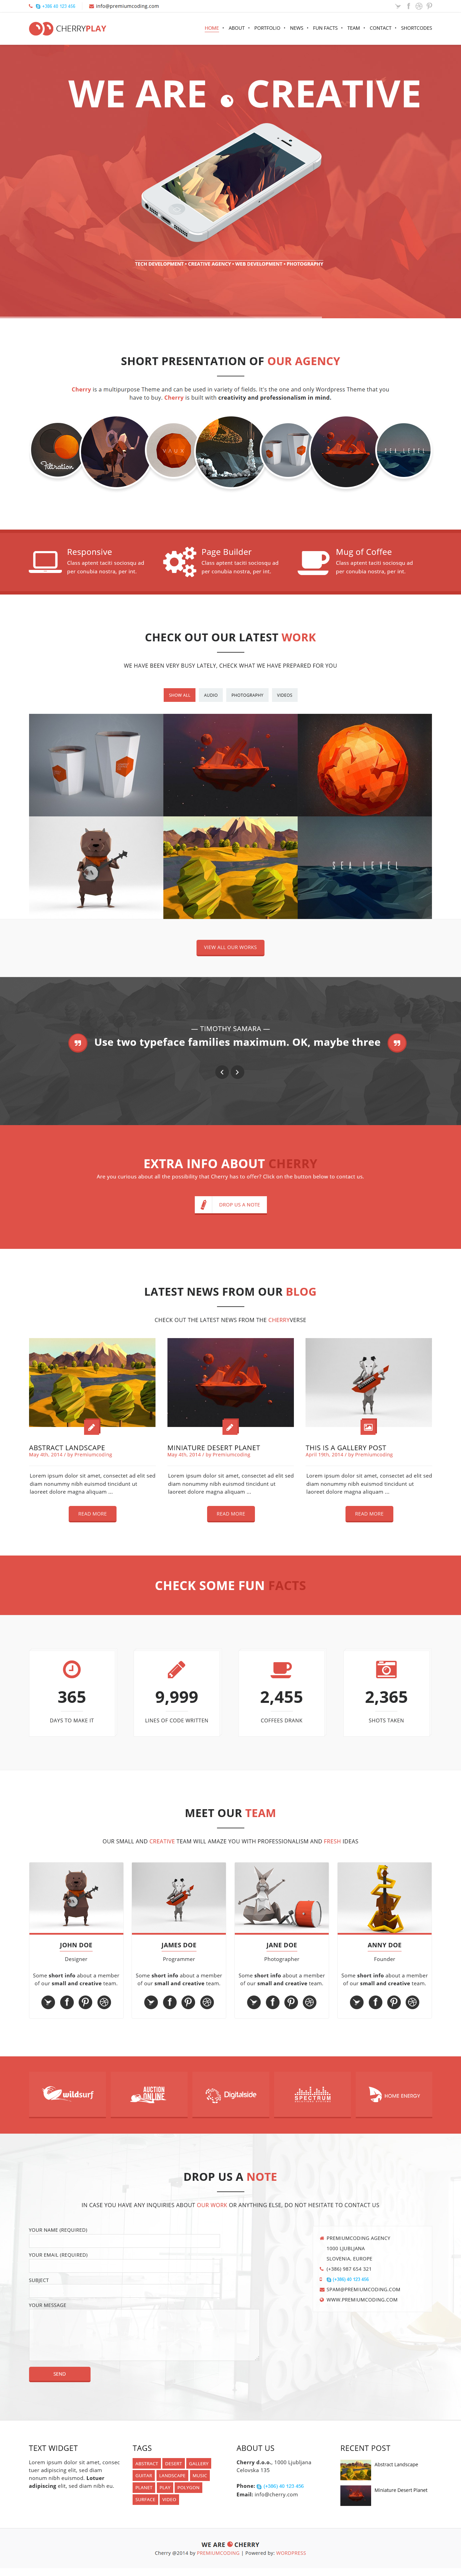 Cherry Premium WordPress Theme - Cherry Premium WordPress Theme 2014-05-20 08-34-58